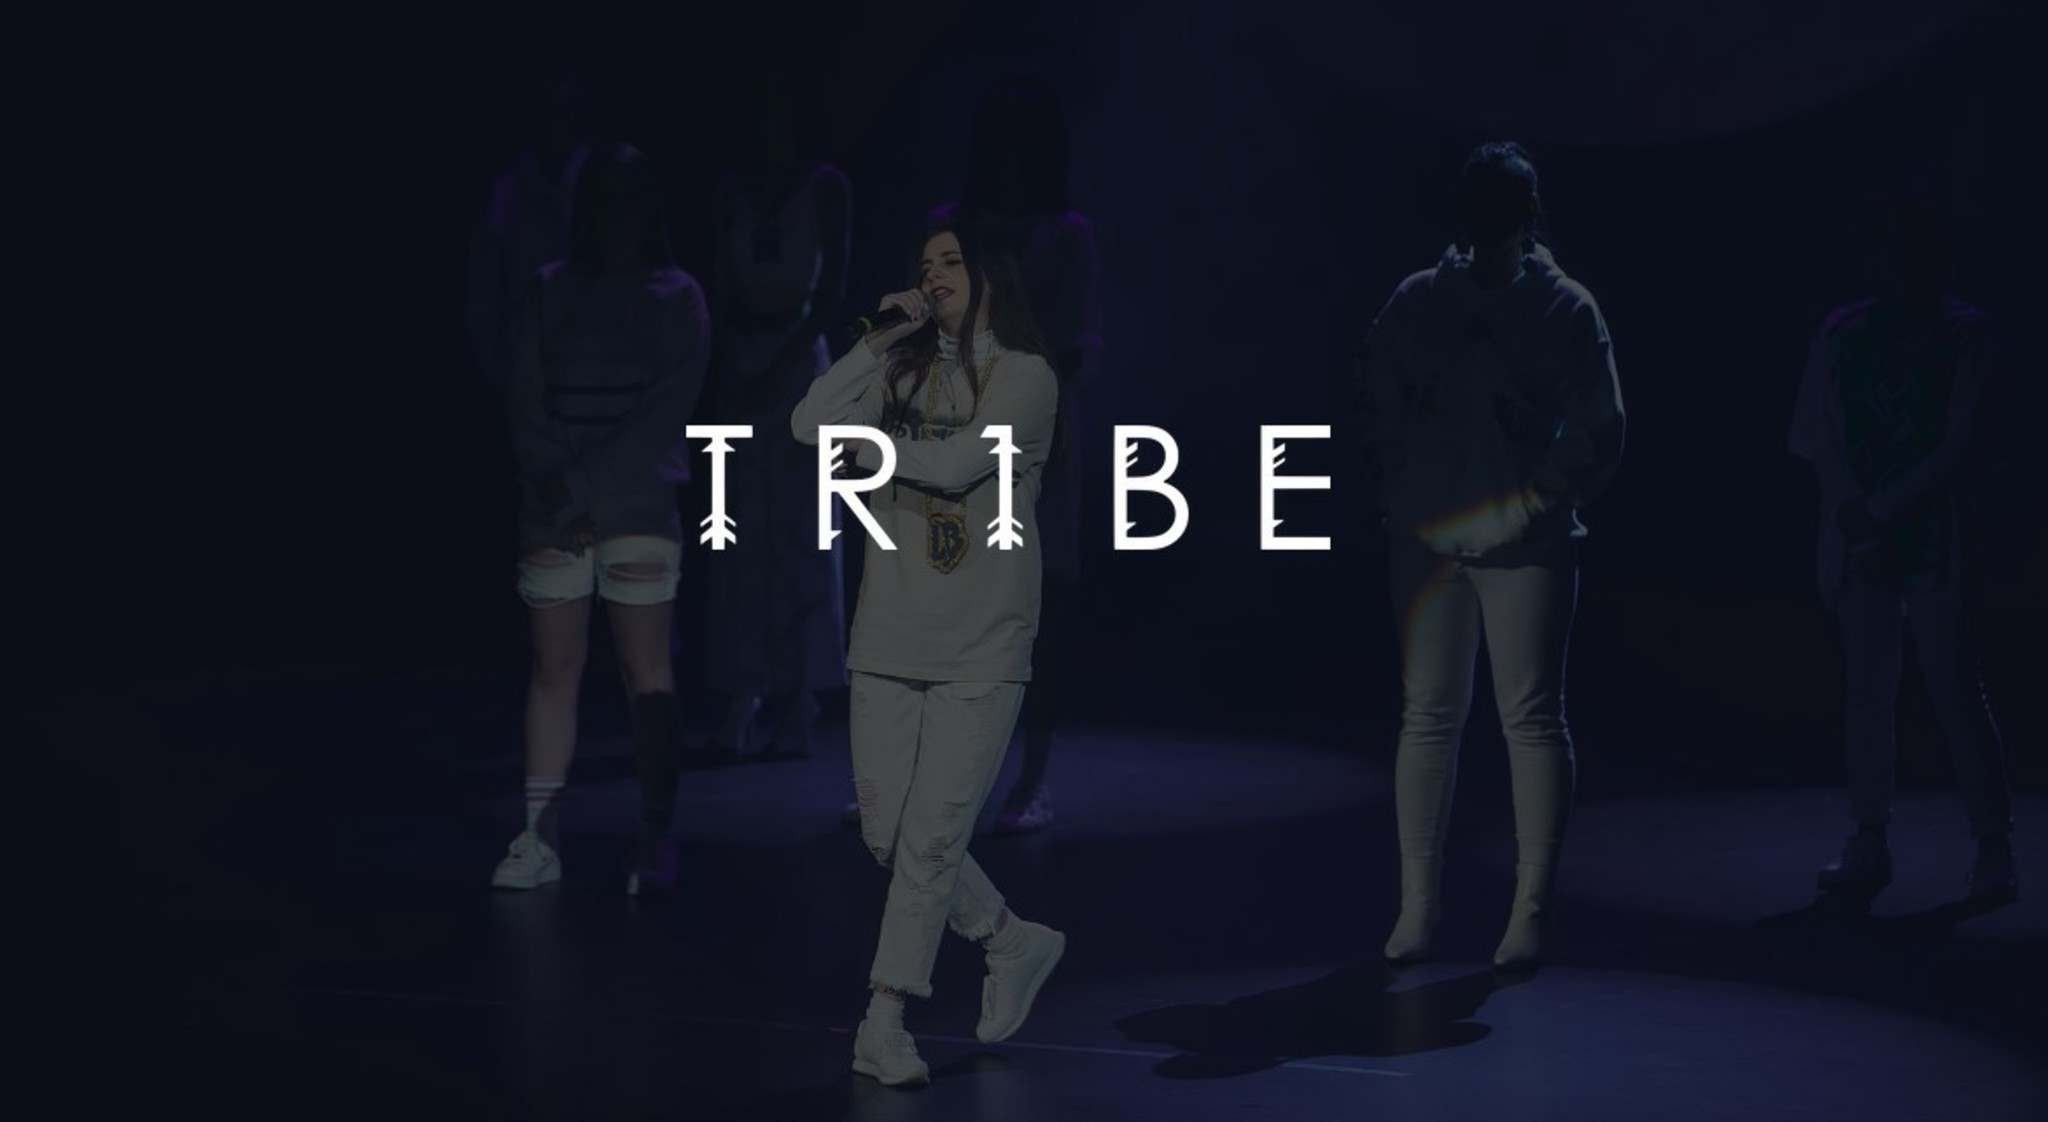 The platform offers subscribers exclusively all-Indigenous music for only $9 a month. (tr1bemusic.com)